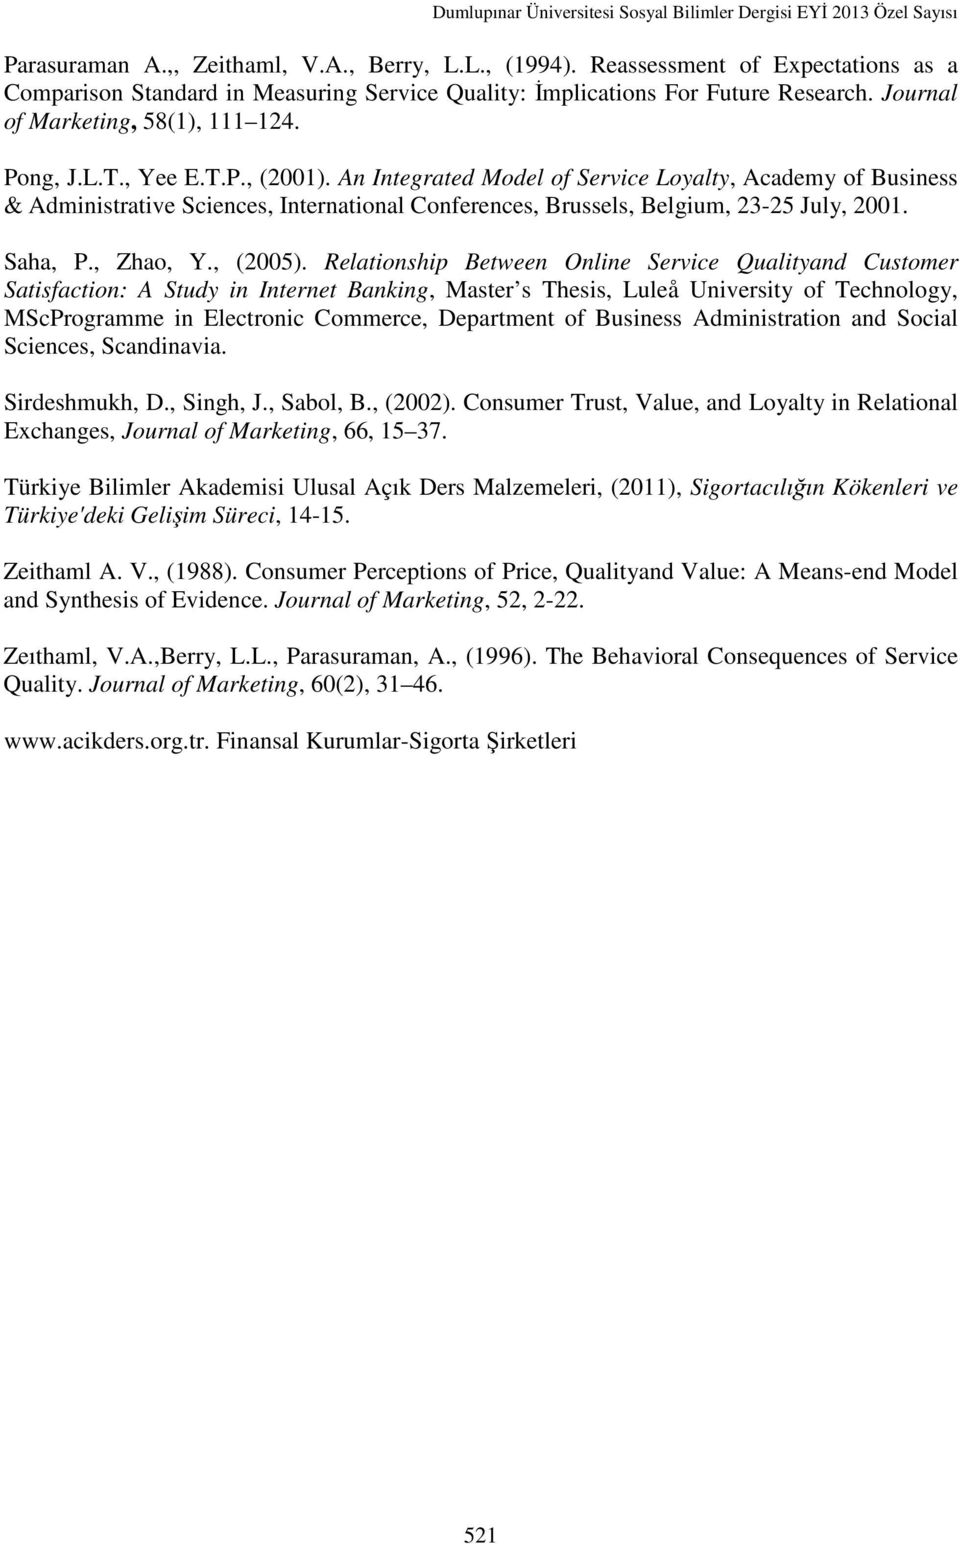 An Integrated Model of Service Loyalty, Academy of Business & Administrative Sciences, International Conferences, Brussels, Belgium, 23-25 July, 2001. Saha, P., Zhao, Y., (2005).